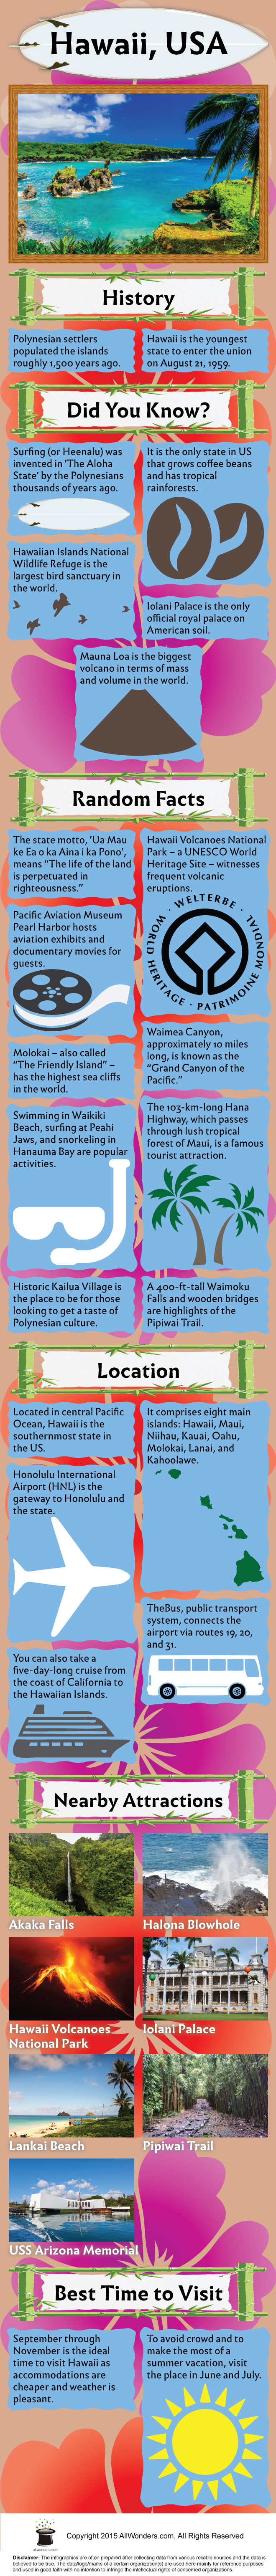 Infographic showing facts and information about Hawaii, United States